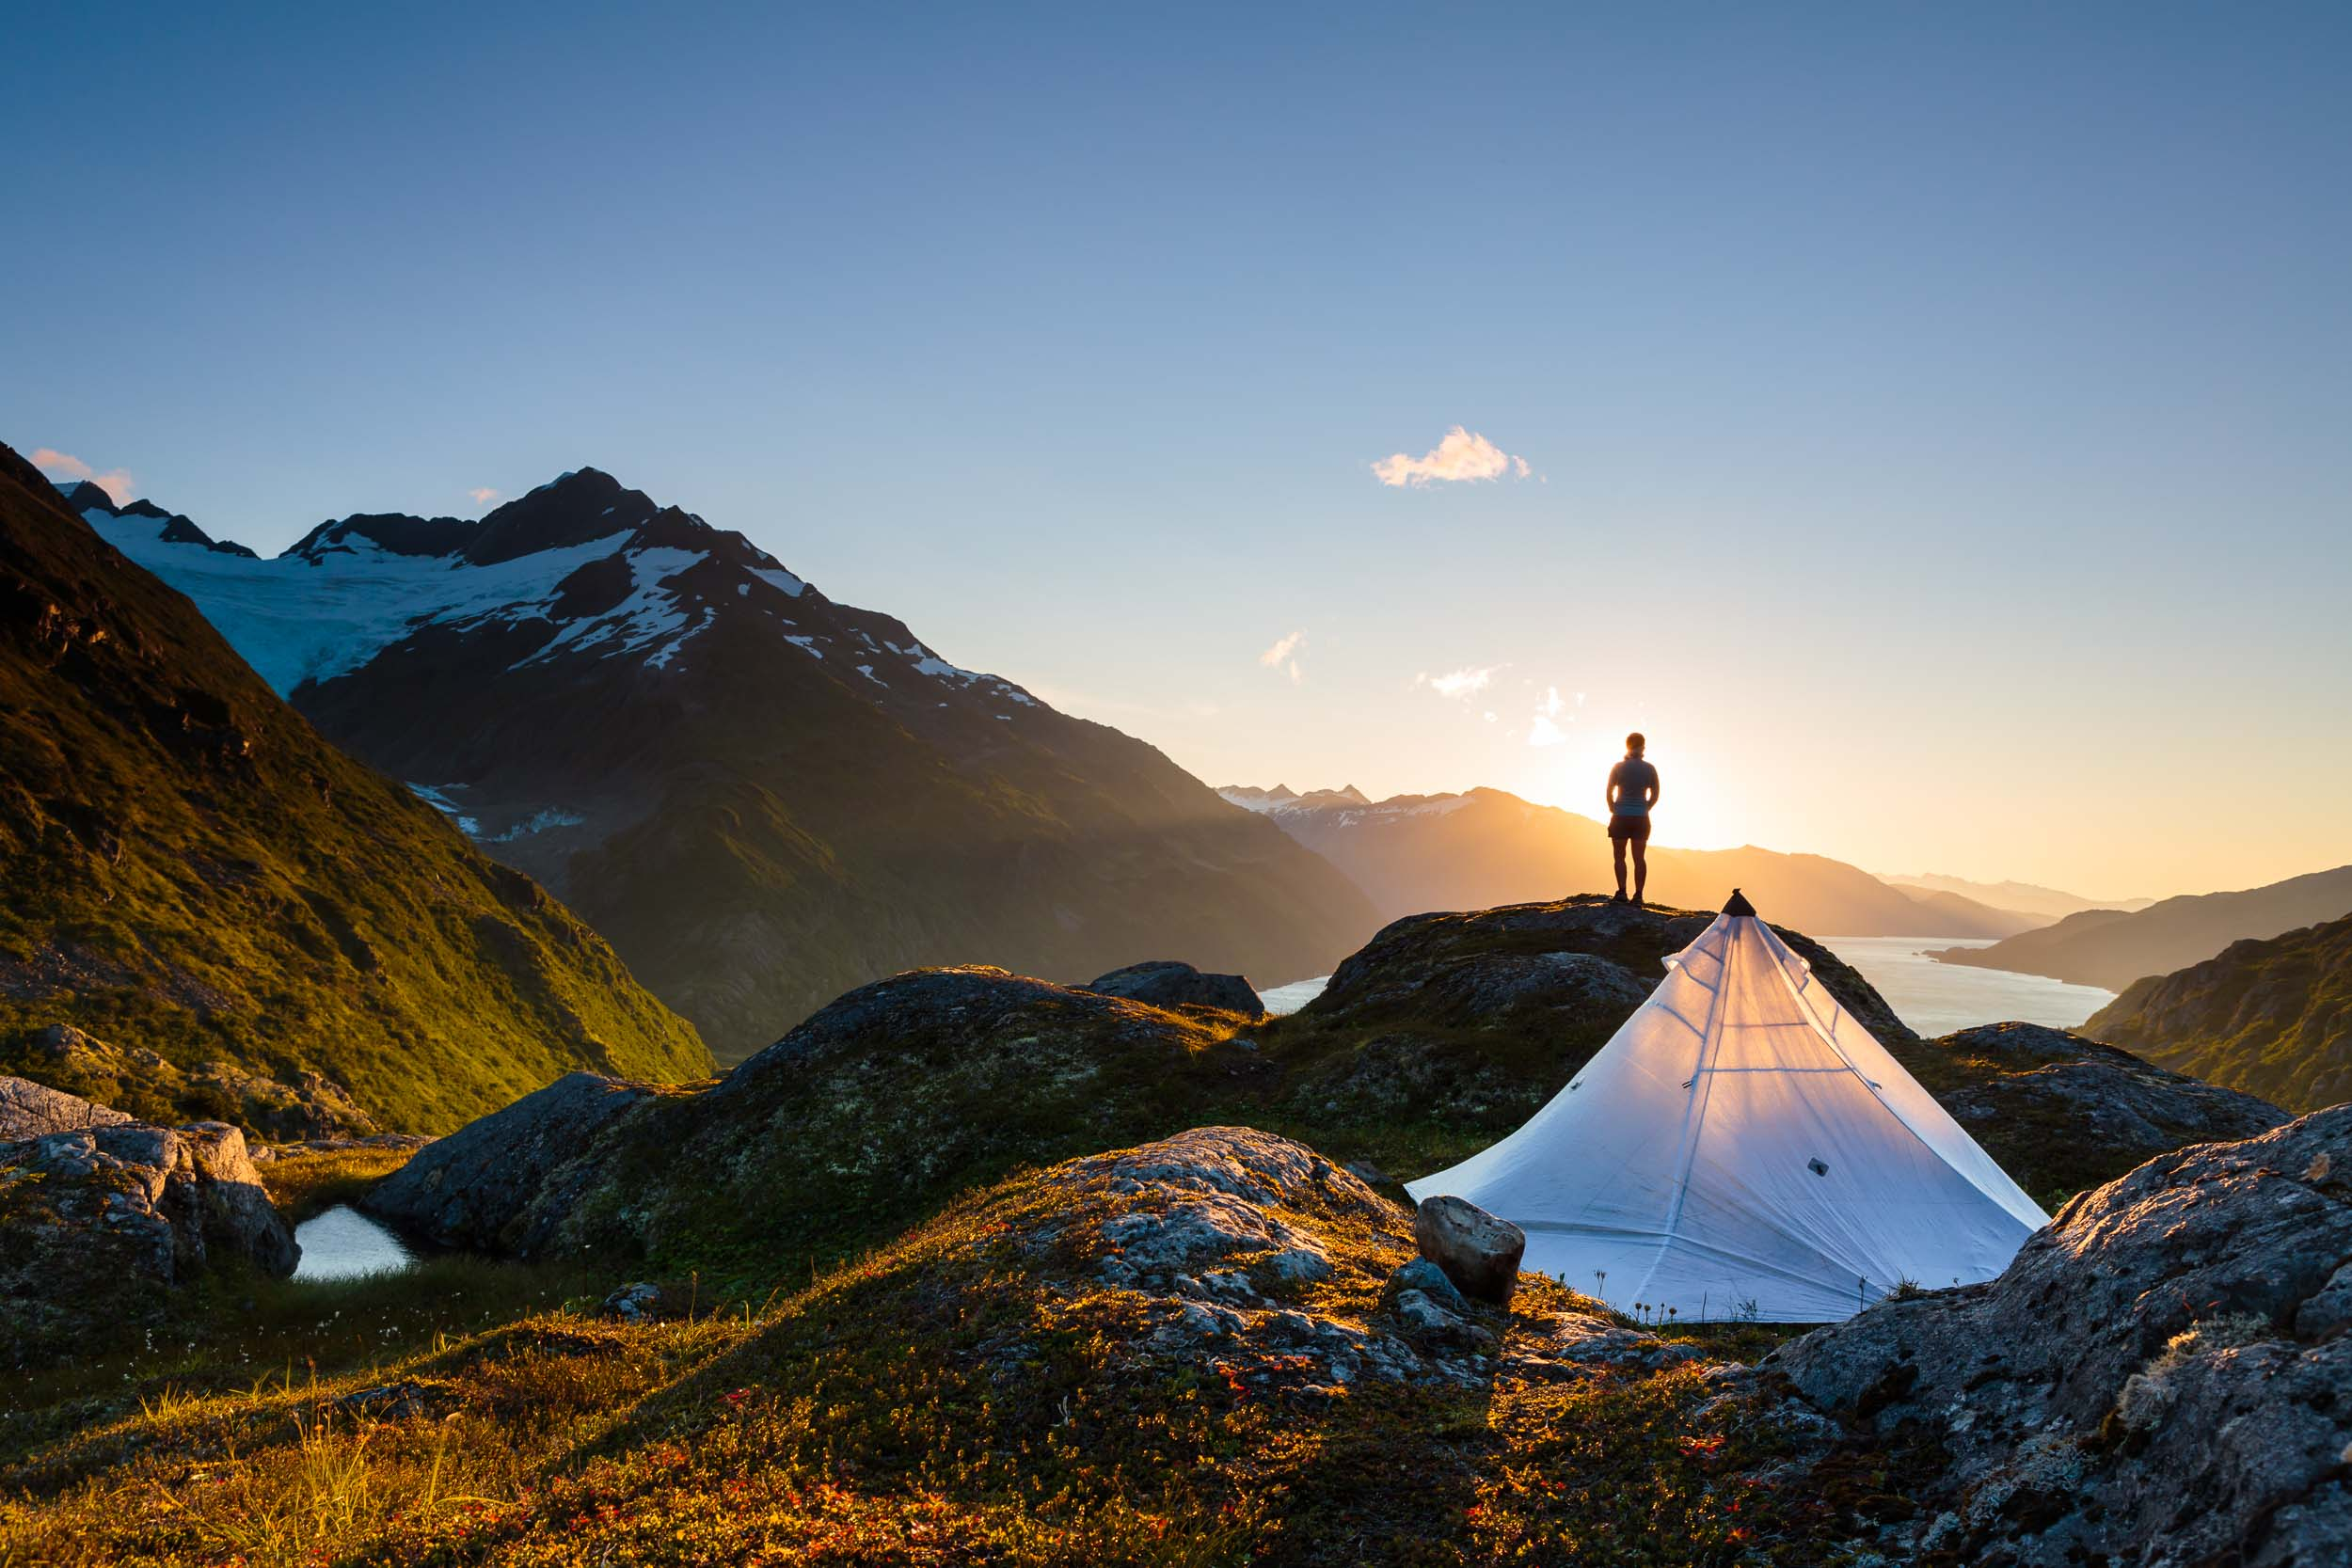 Alaska Adventure Travel Backcountry Camp Portage Pass